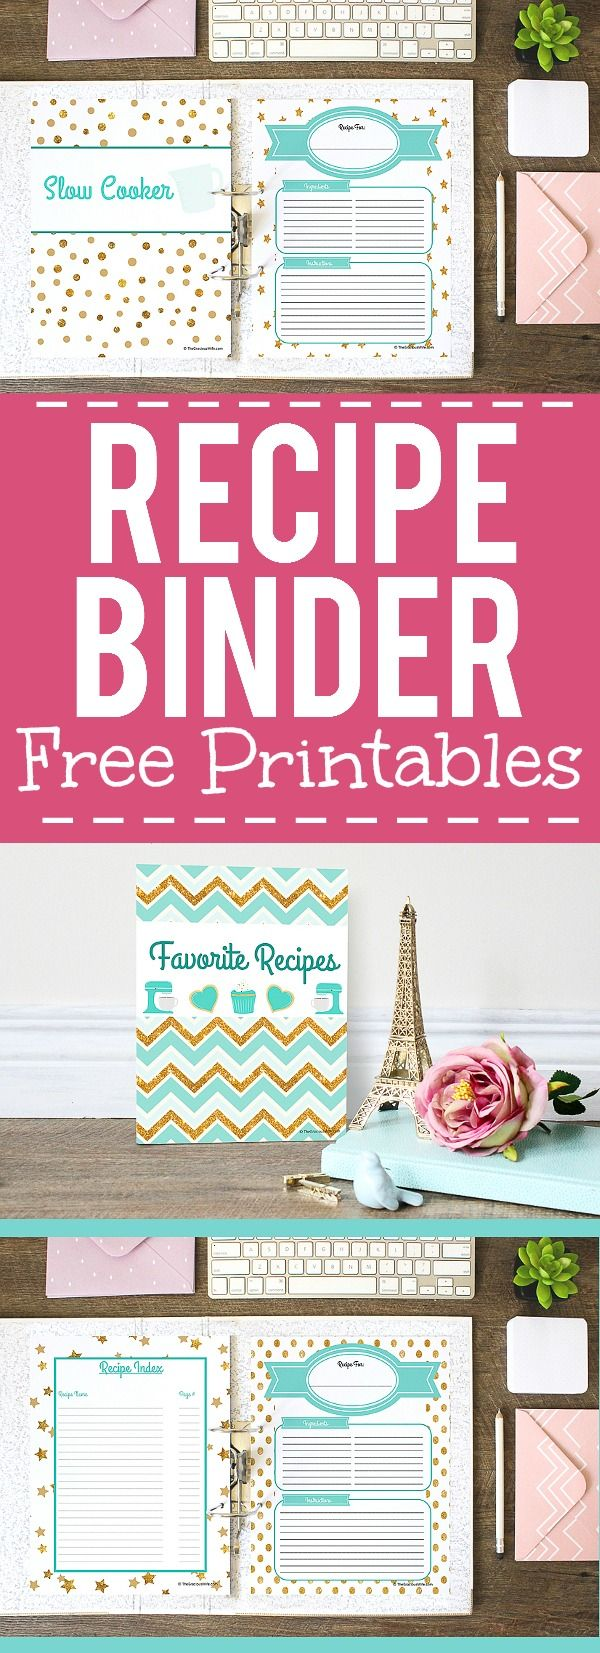 This is a picture of Nifty Free Printable Recipe Binder